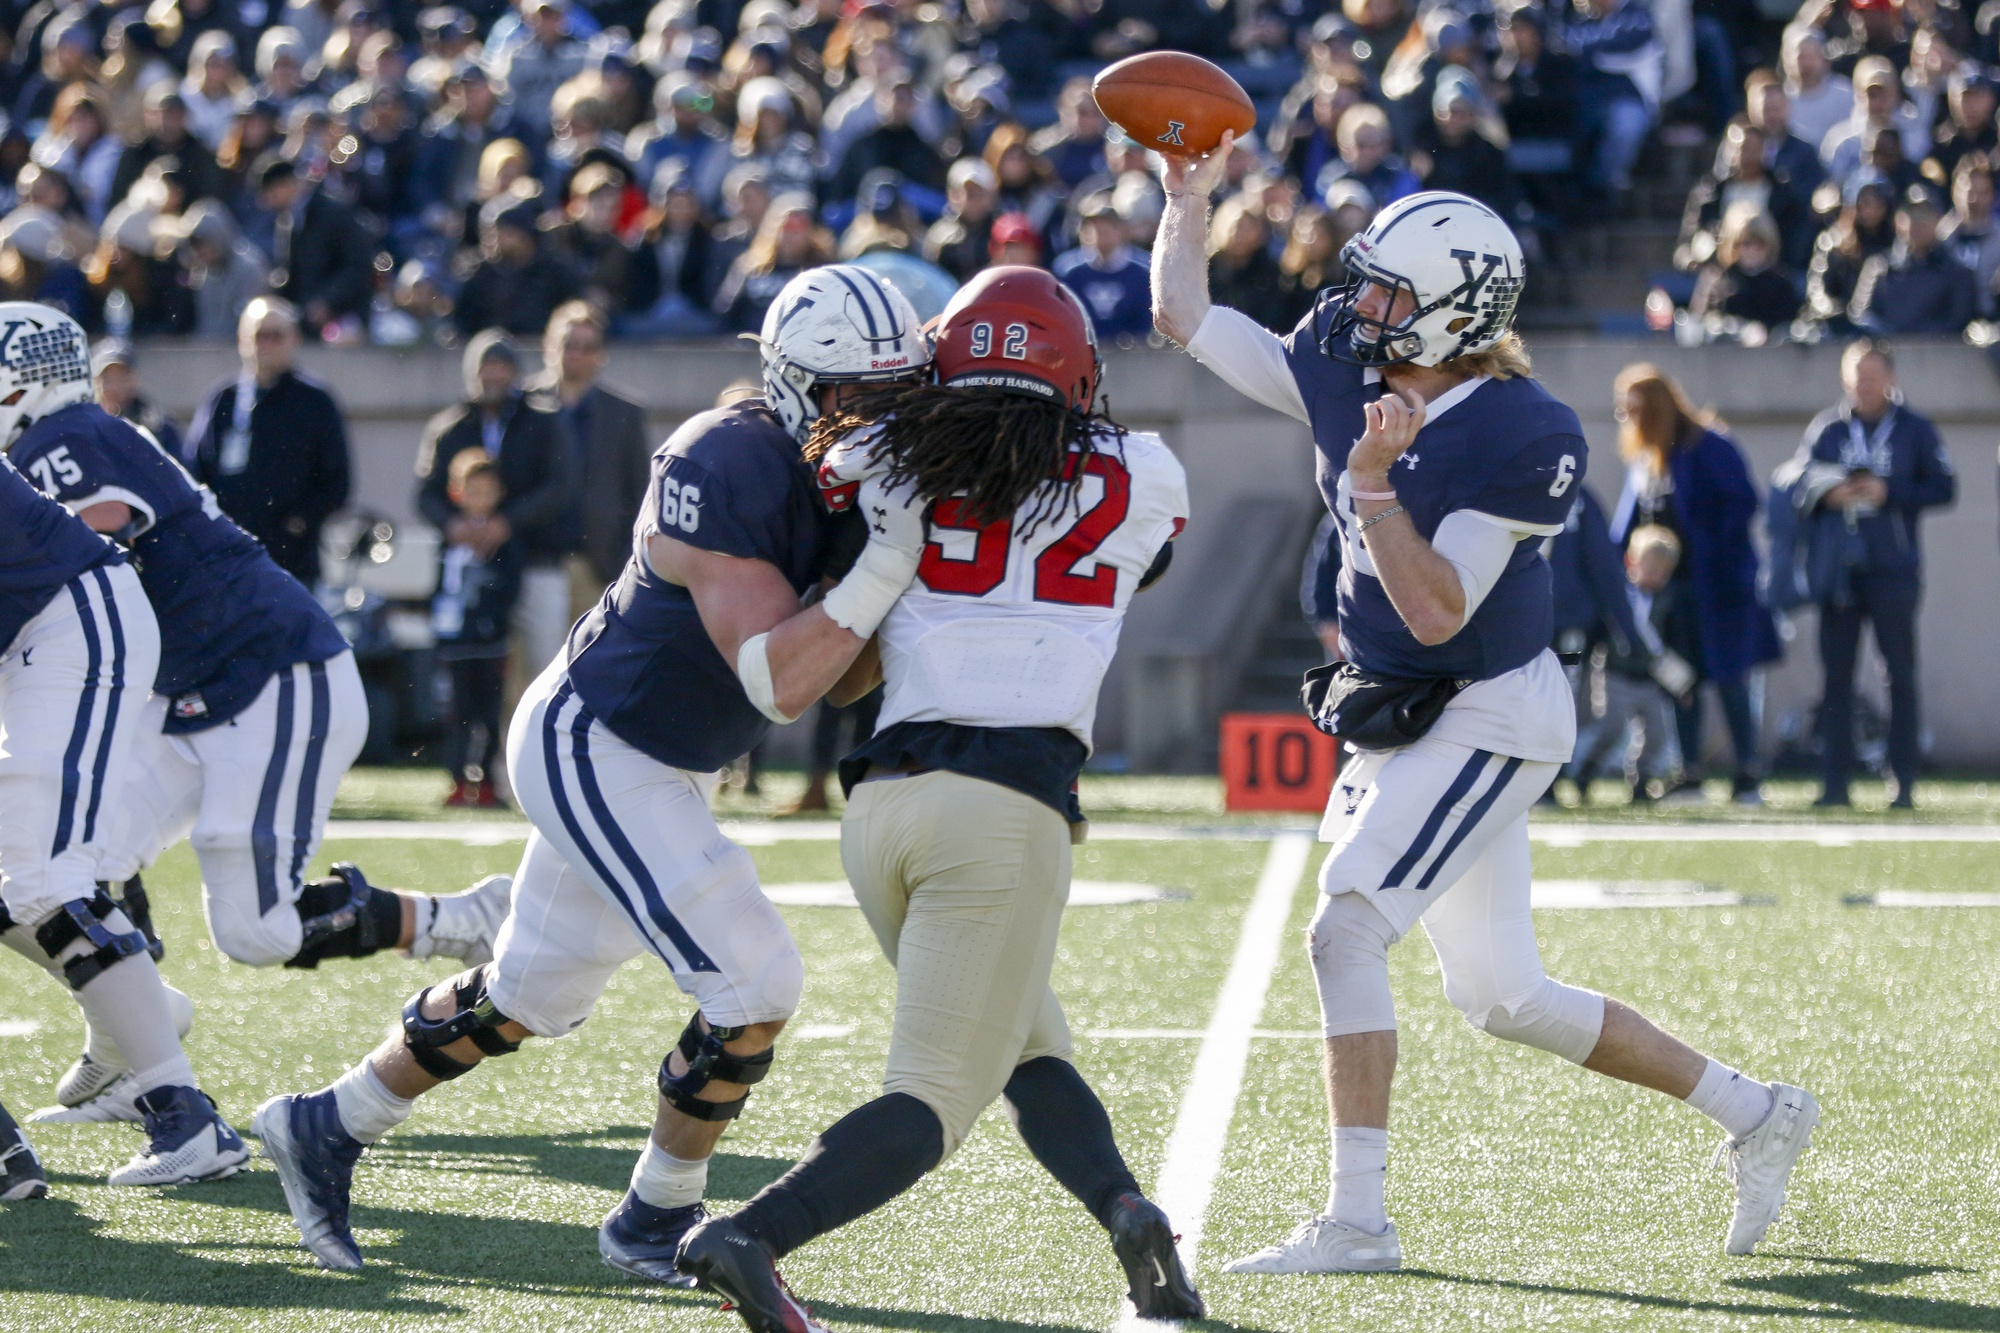 Yale quarterback Kurt Rawlings led the victorious team's offensive production Saturday afternoon. The veteran logged 417 yards and three touchdowns through the air, while also leading the team in rushing with 62 yards and a touchdown on sprints.